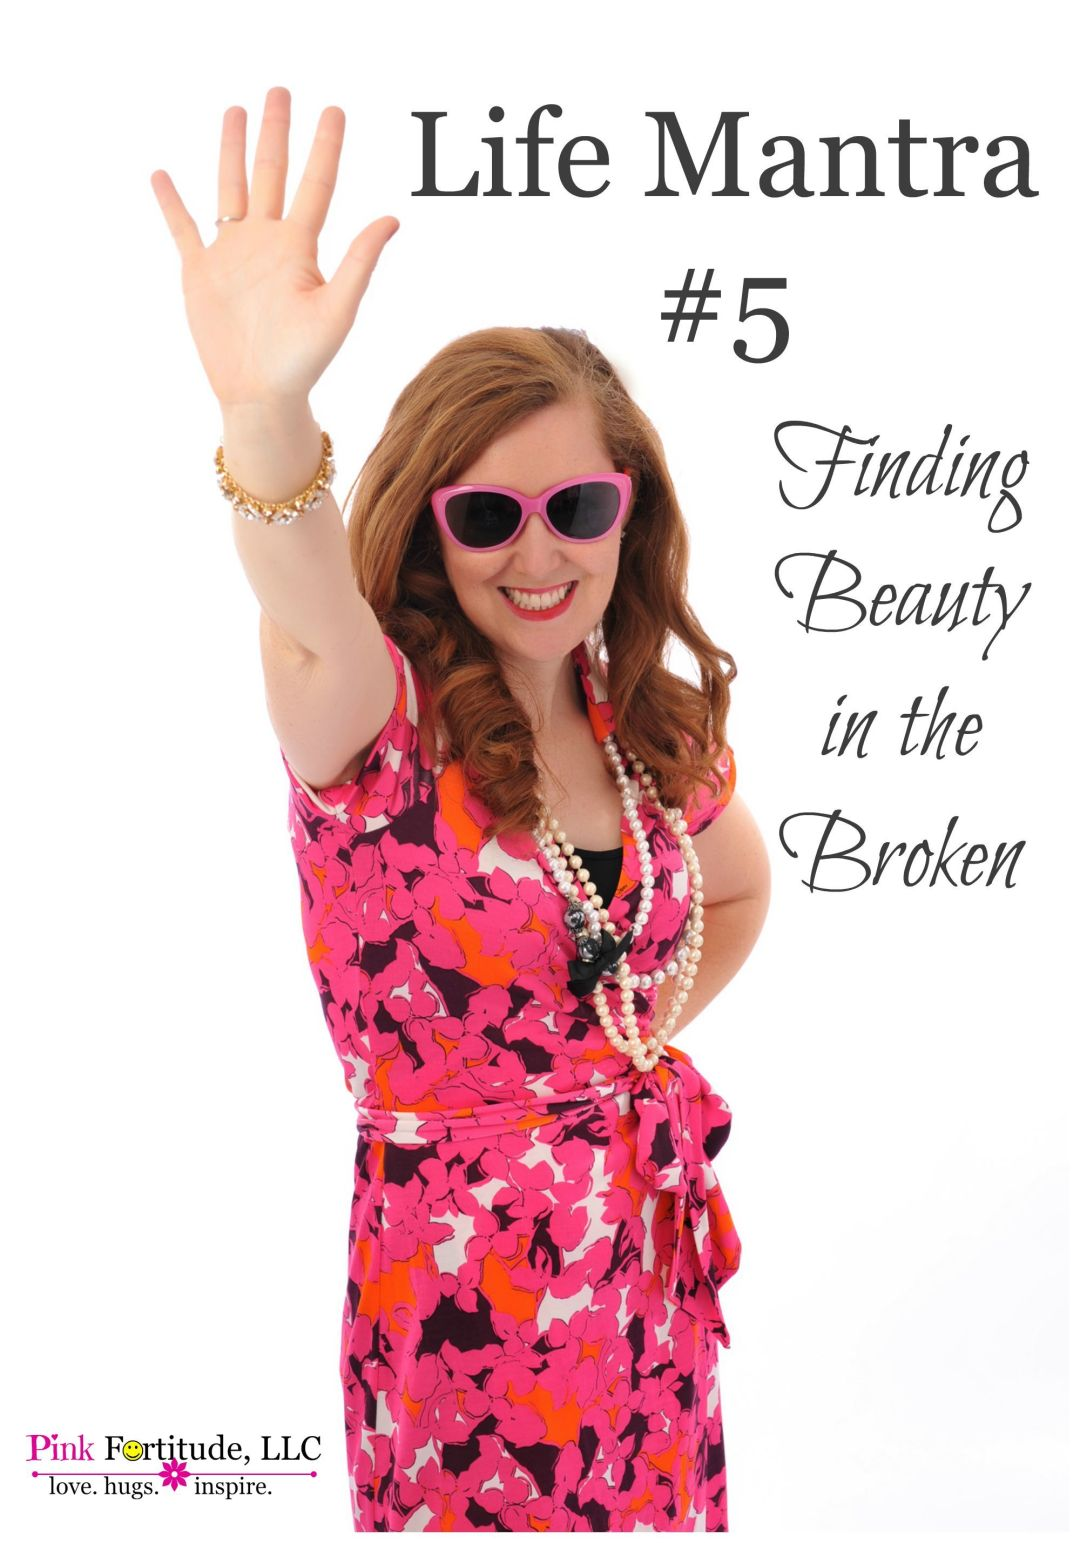 Life Mantra #5 - Finding Beauty in the Broken